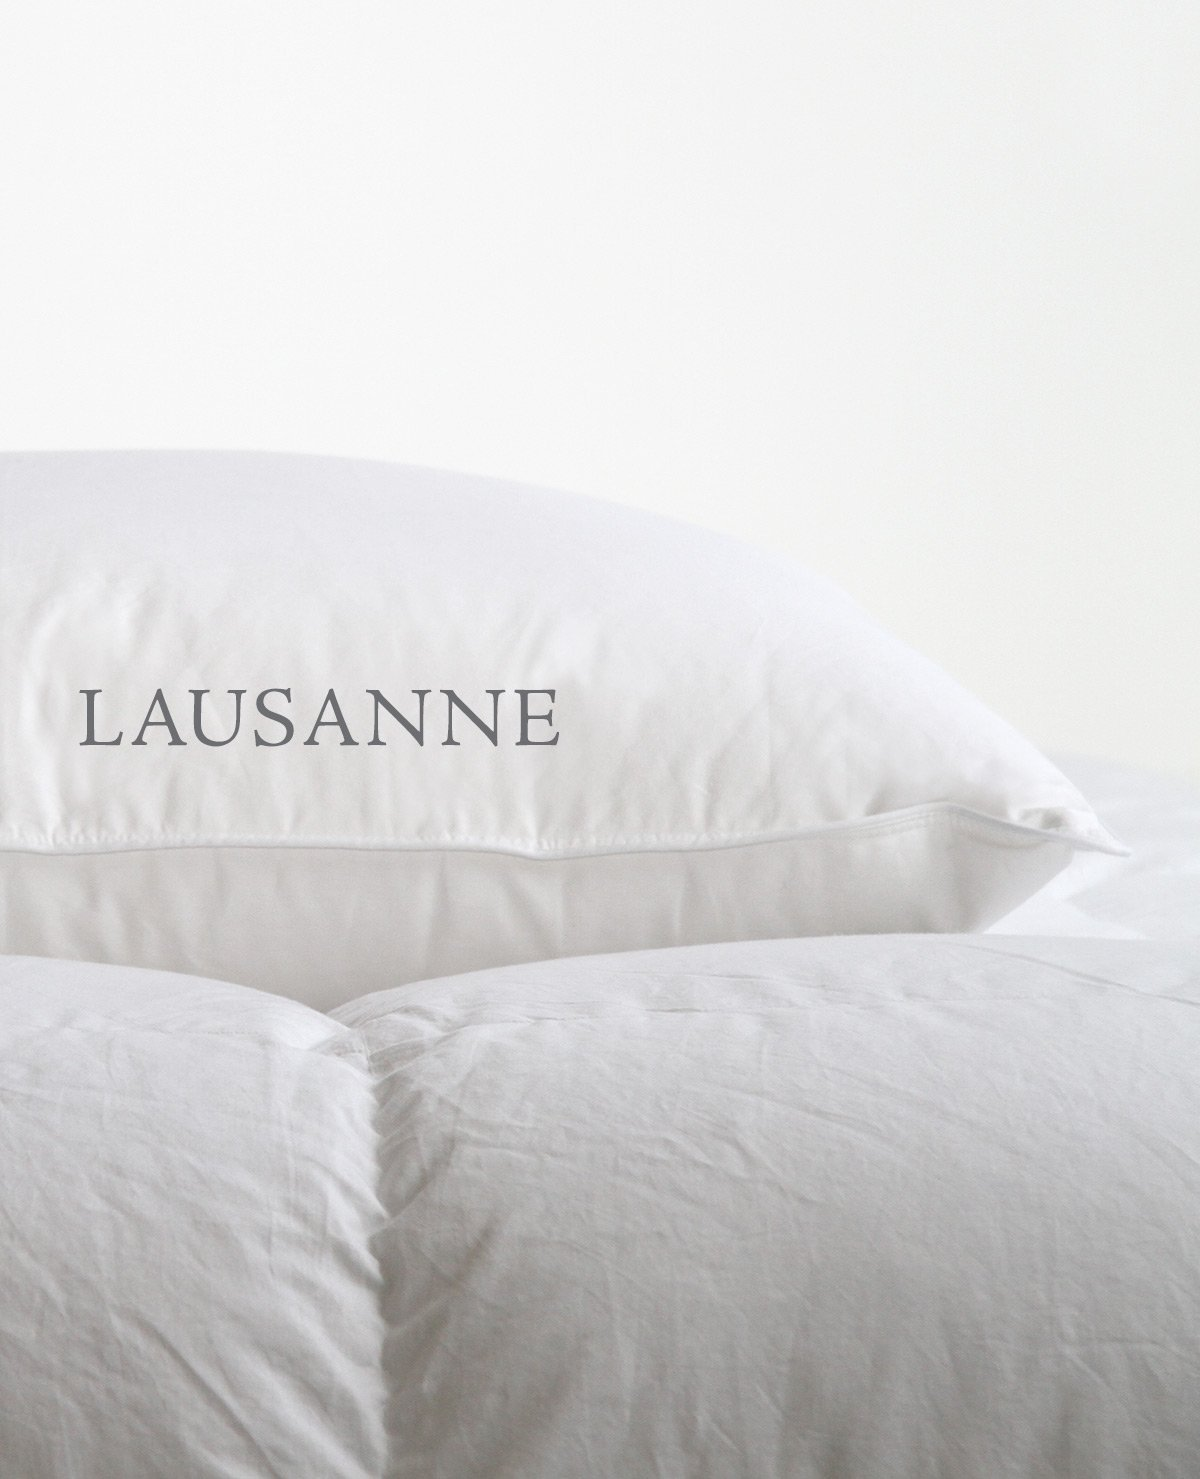 Lausanne%20European%20Goose%20Down%20Pillow